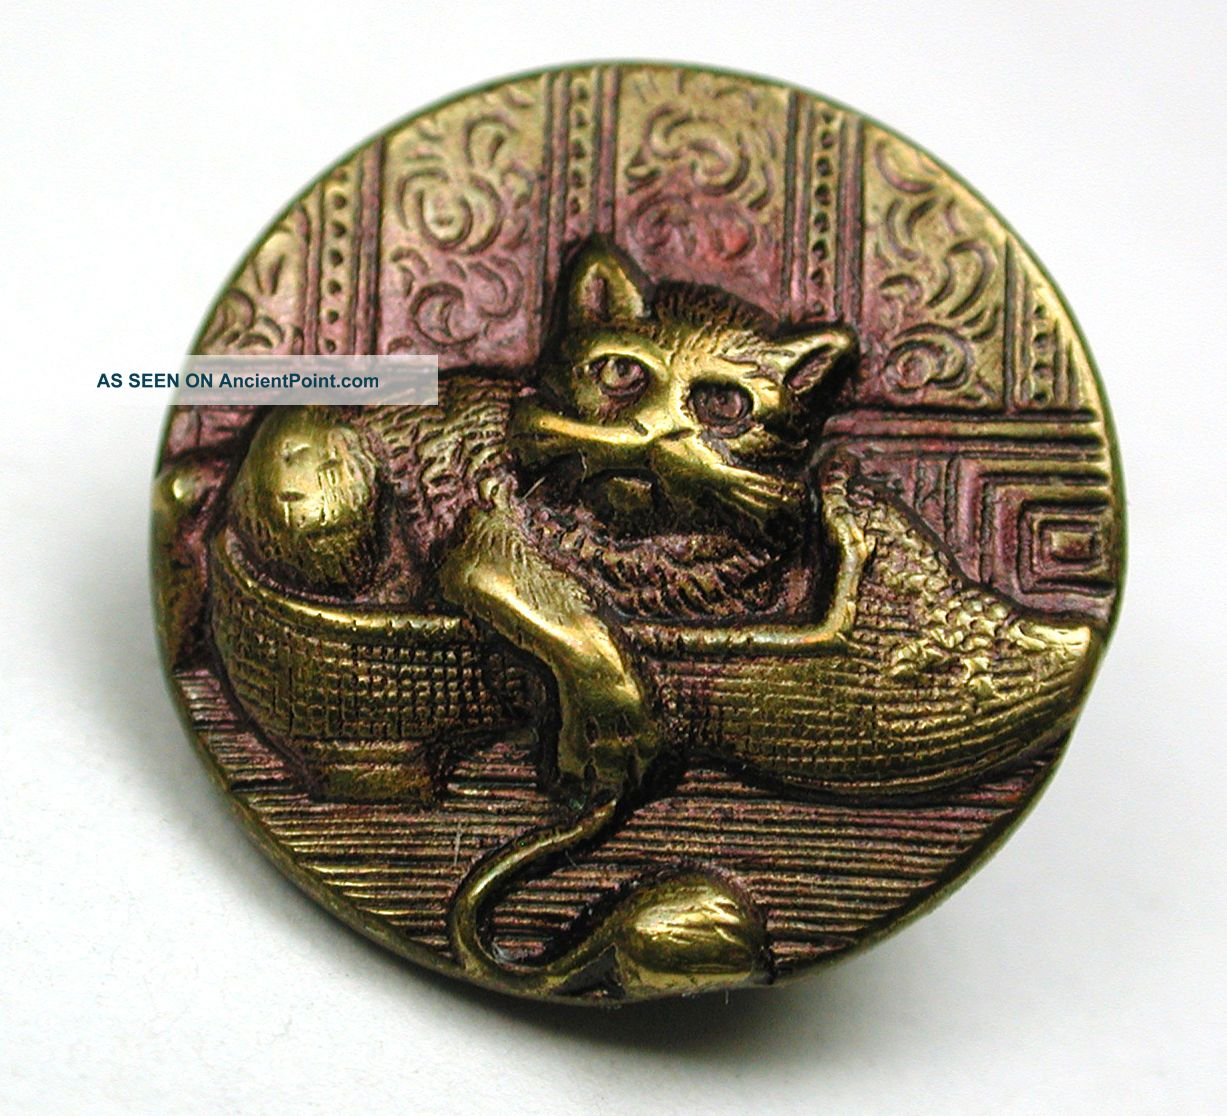 Antique Tinted Brass Button Cat In A Shoe W/ Yarn Scene - 5/8